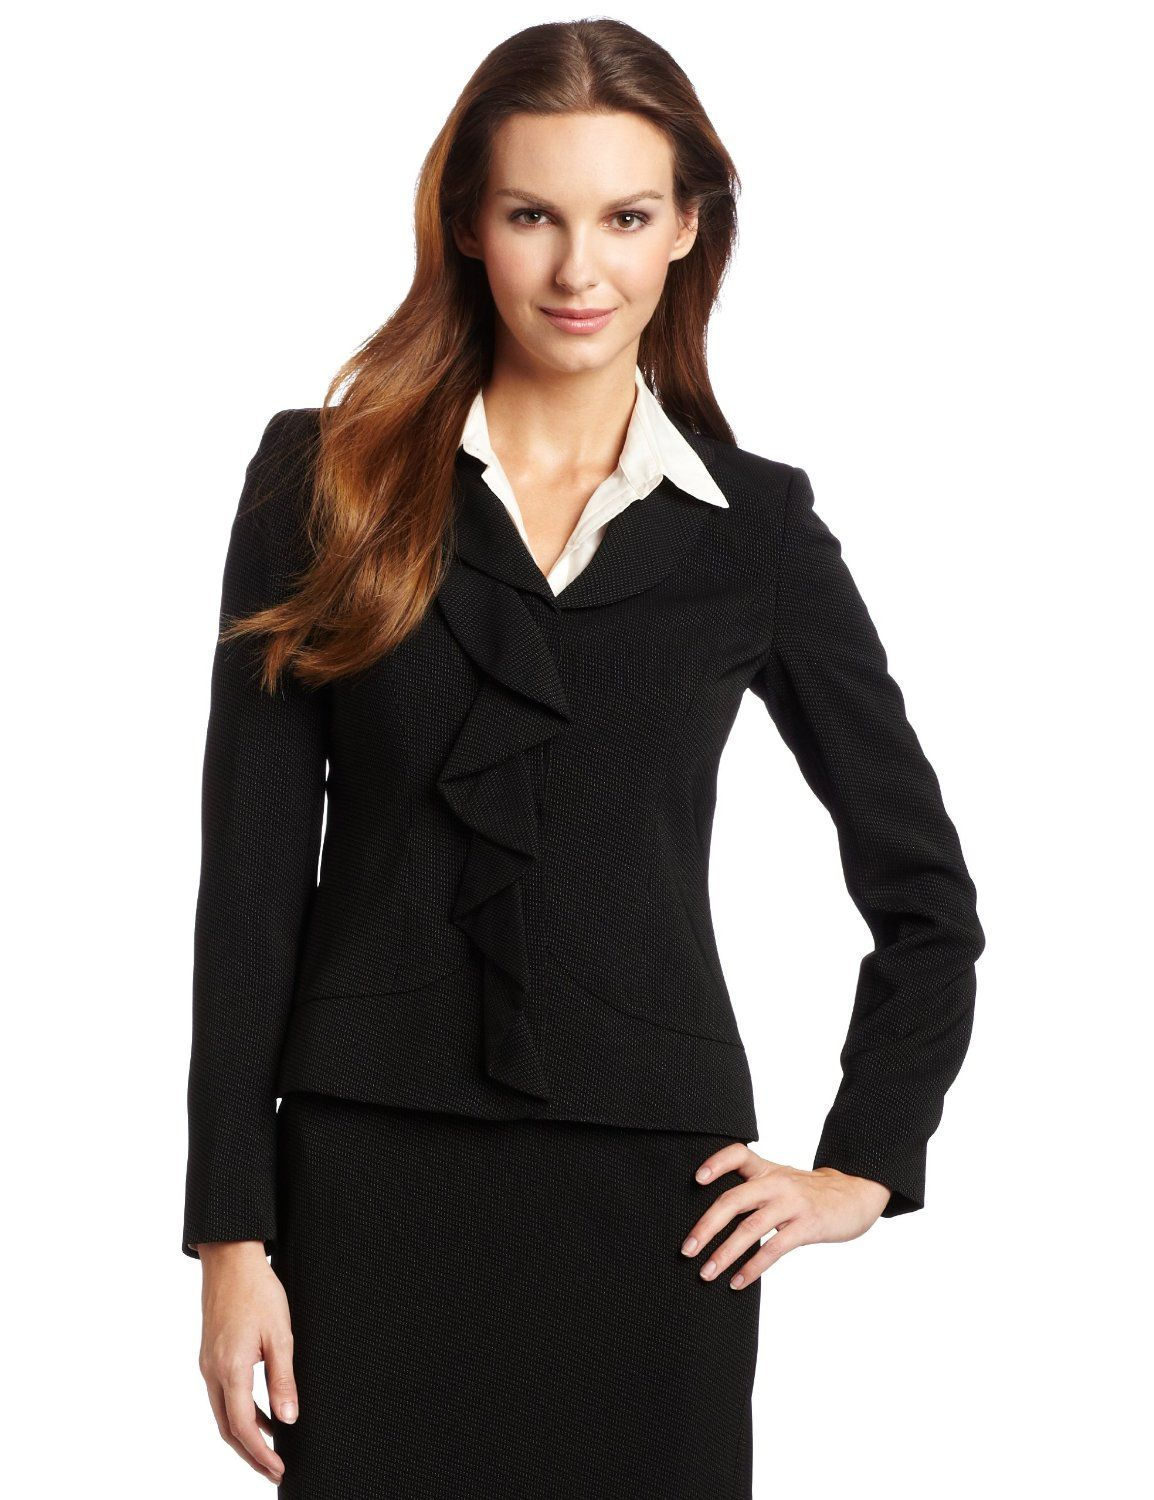 This is another very pretty business casual women's dress suit ...